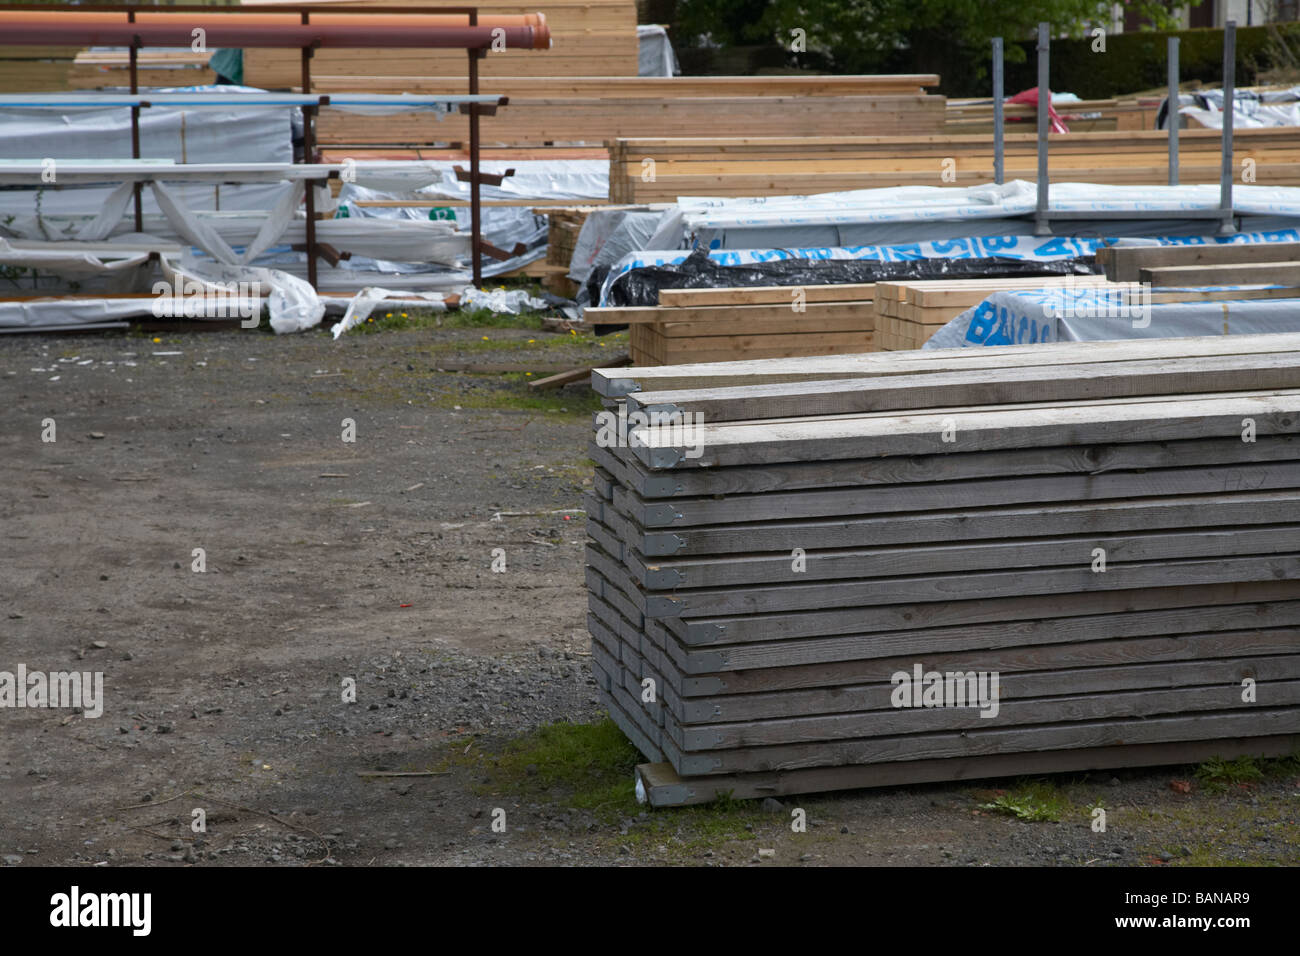 pile of wooden scaffold ended timber in a builders merchants yard - Stock Image